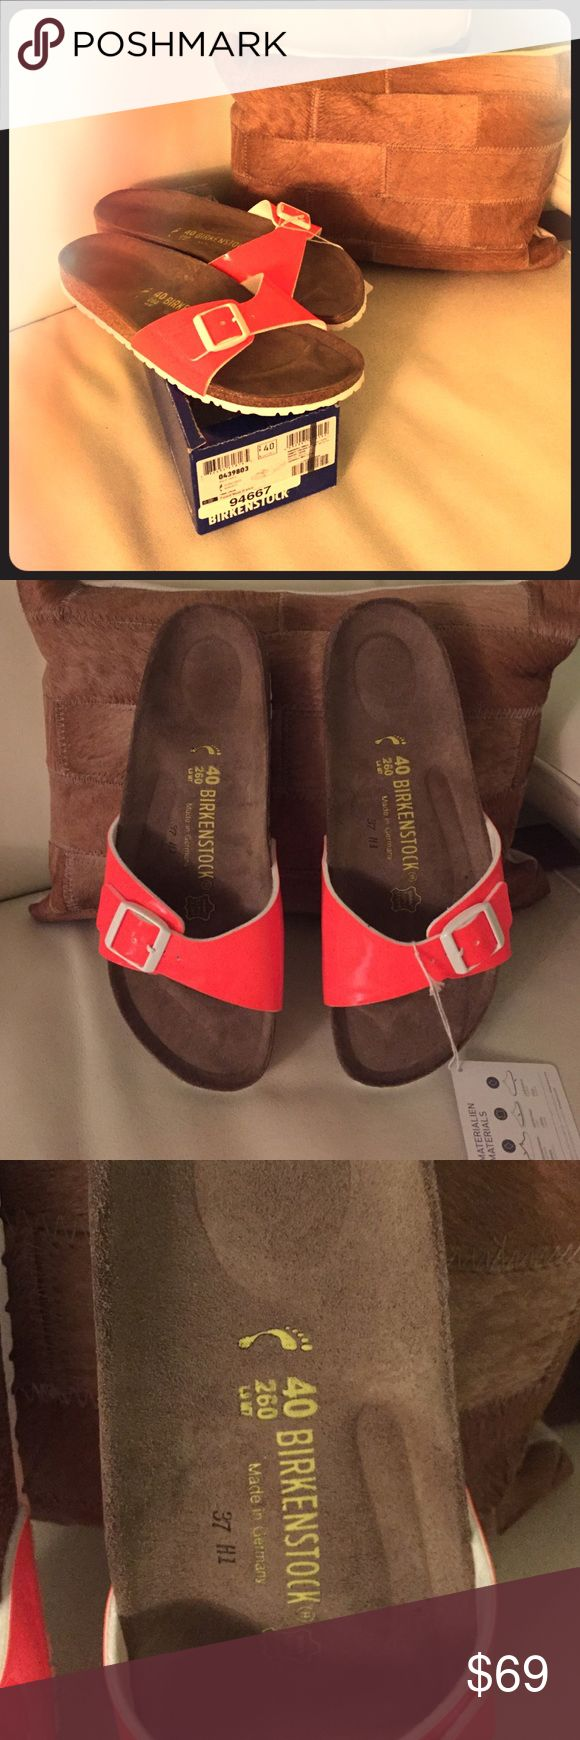 Reduced⬇️Birkenstock Madrid Neon Orange Narrow Fit Super comfy and stylish at the same time, new Birkenstock Slippers, never worn, only tried on. Leather insole, natural cork footbed, upper is dark Birko-Flor, which adds great contrast to orange.Make them yours! Birkenstock Shoes Slippers